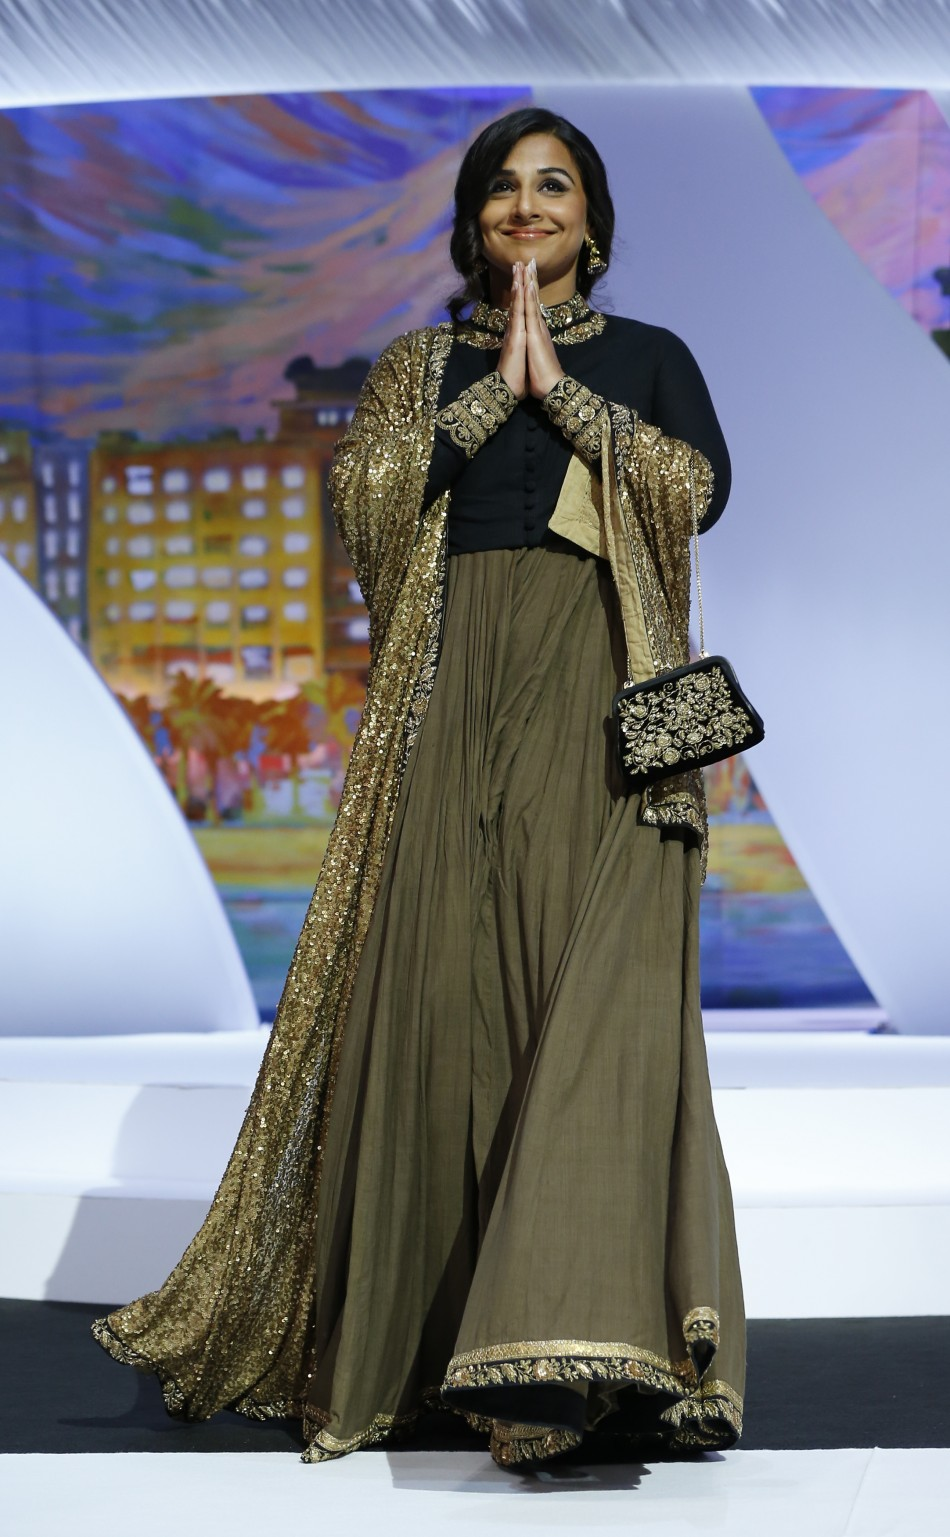 Jury member actress Vidya Balan arrives on stage during the closing ceremony of the 66th Cannes Film Festival in Cannes May 26, 2013.